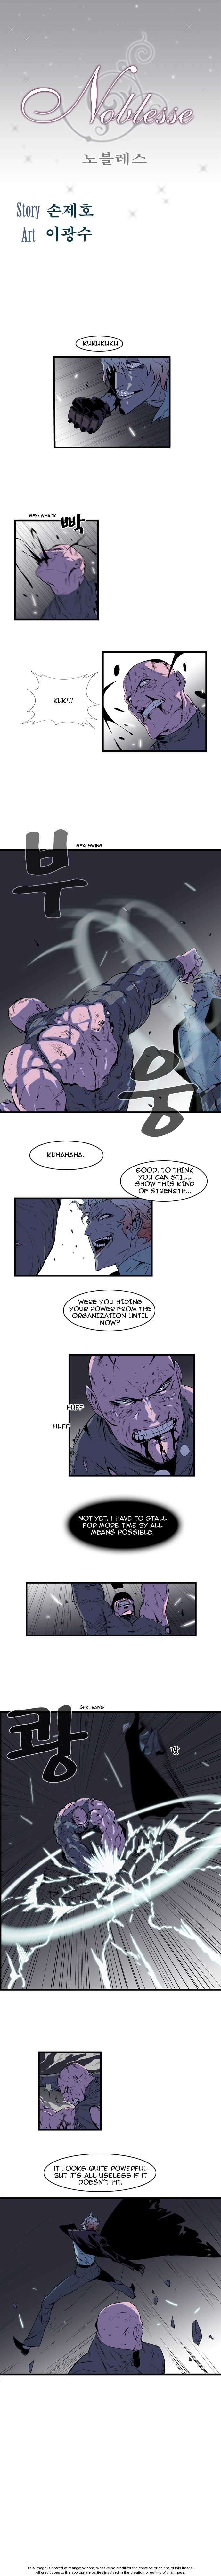 Noblesse 74 Page 1